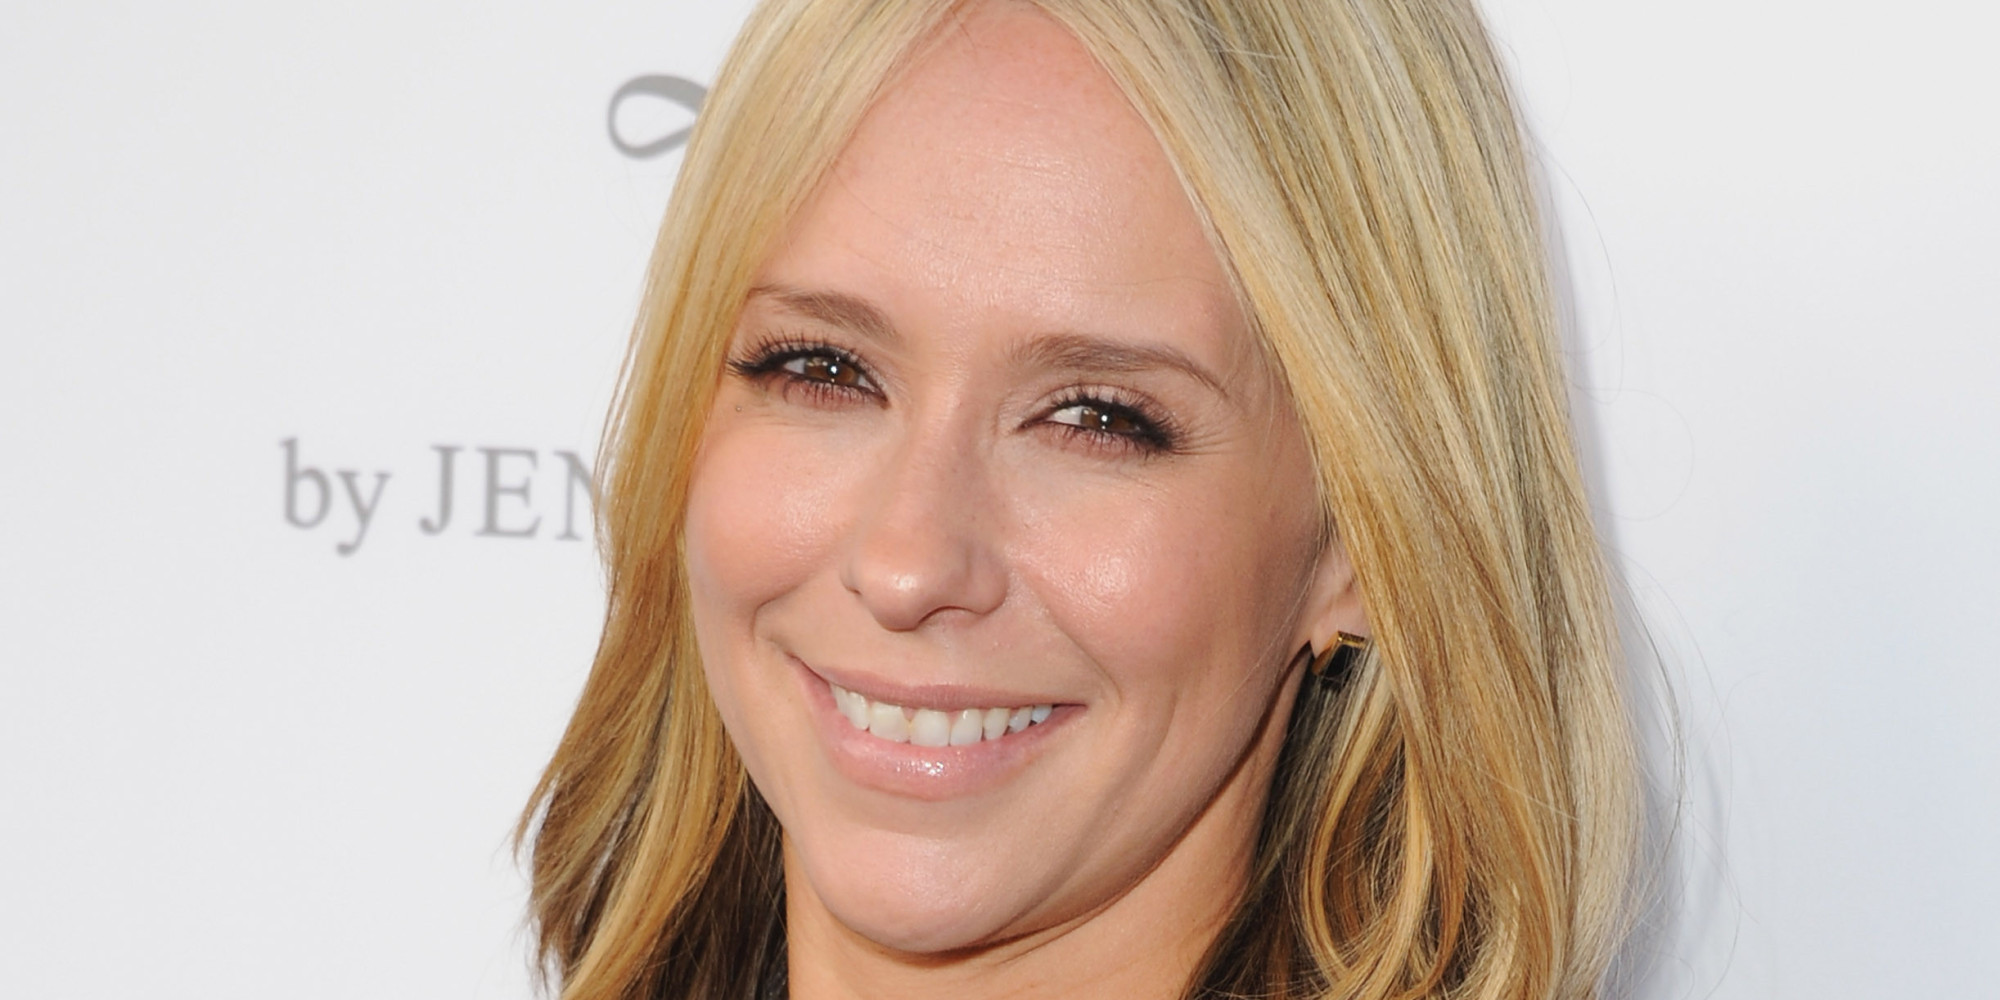 Jennifer Love Hewitt Wants To Teach Her Daughter To Have